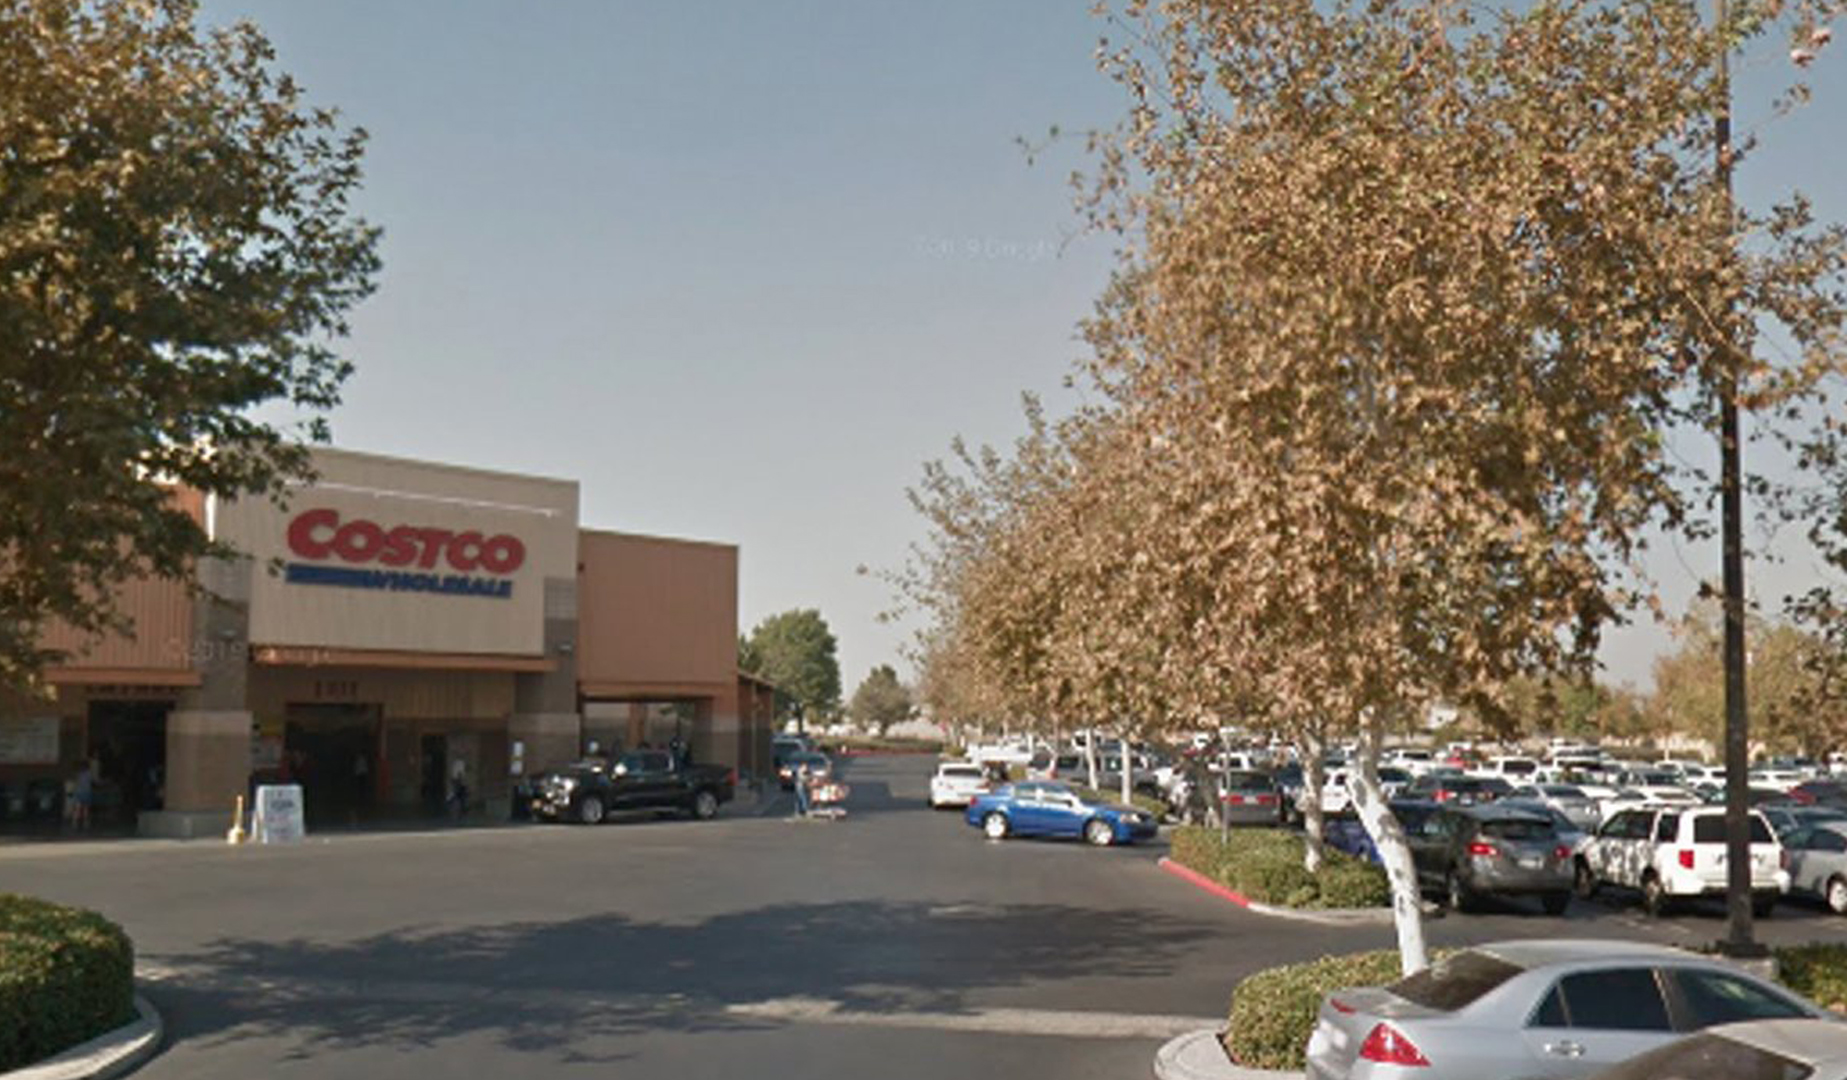 The Costco parking lot in Bakersfield is seen in a Google Maps image.